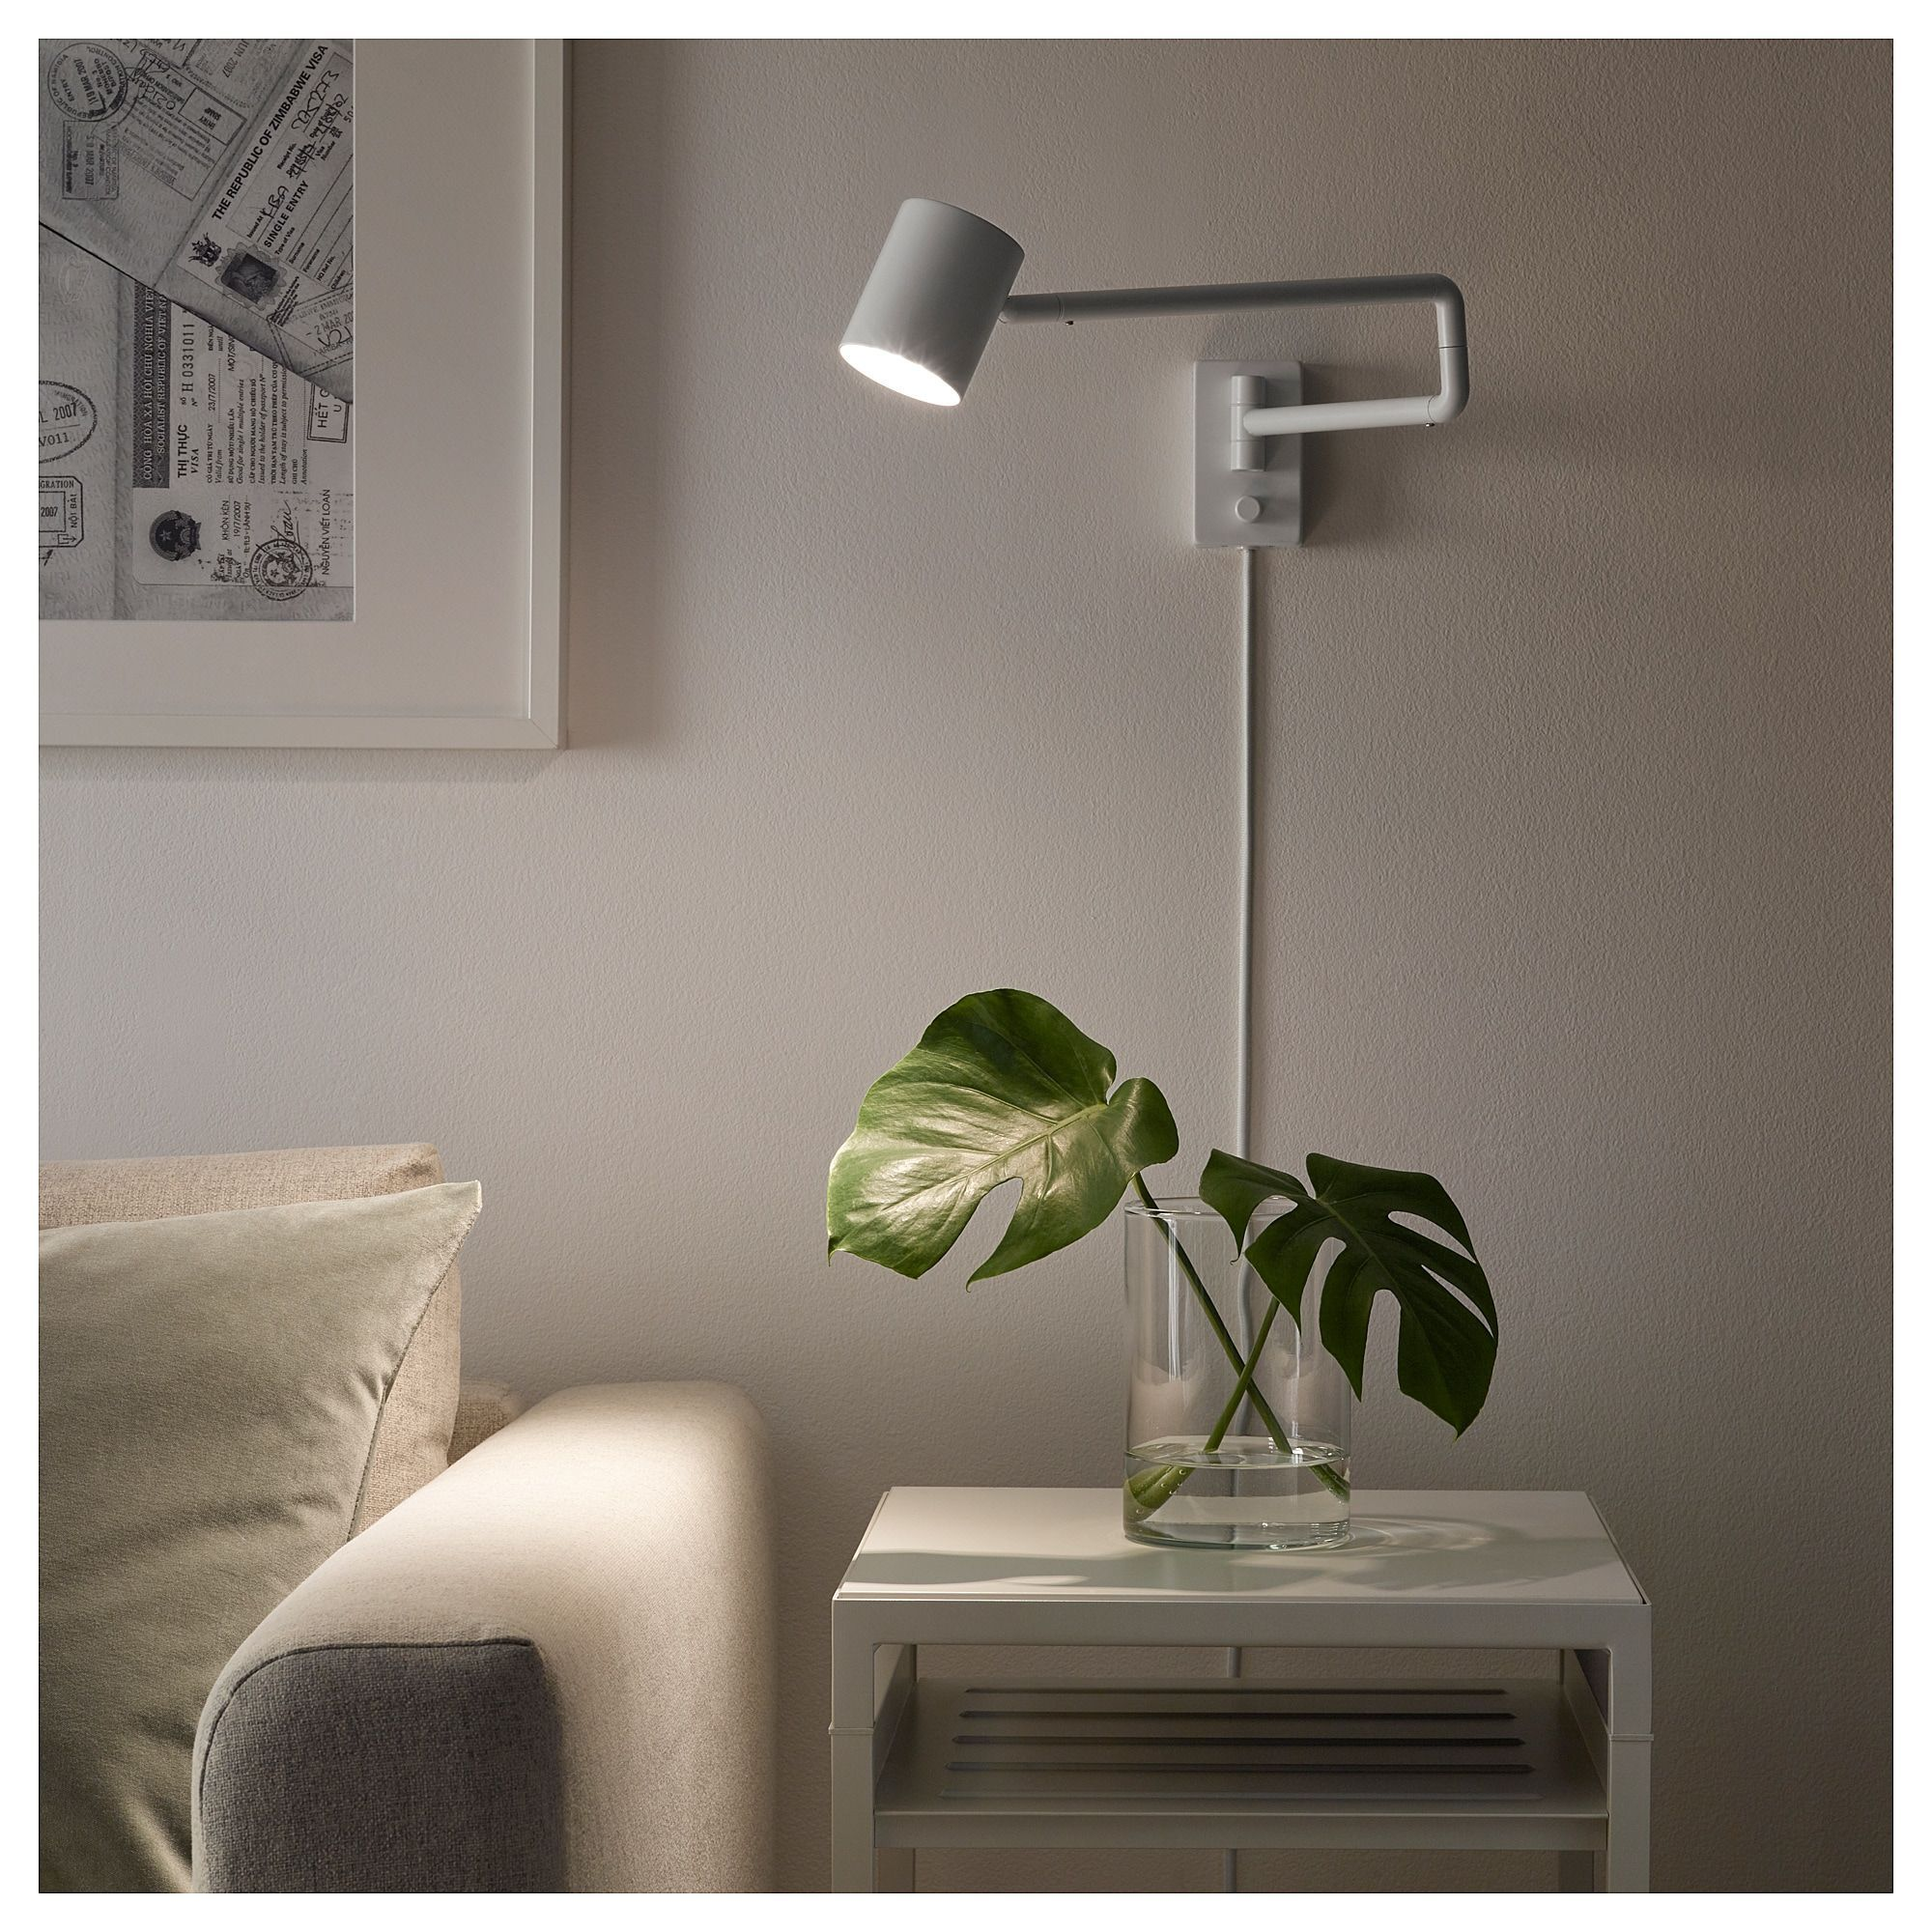 Nymane Wall Lamp With Swing Arm Led Bulb White Ikea Wall Lamp Wall Lamps Living Room Wall Lights Living Room